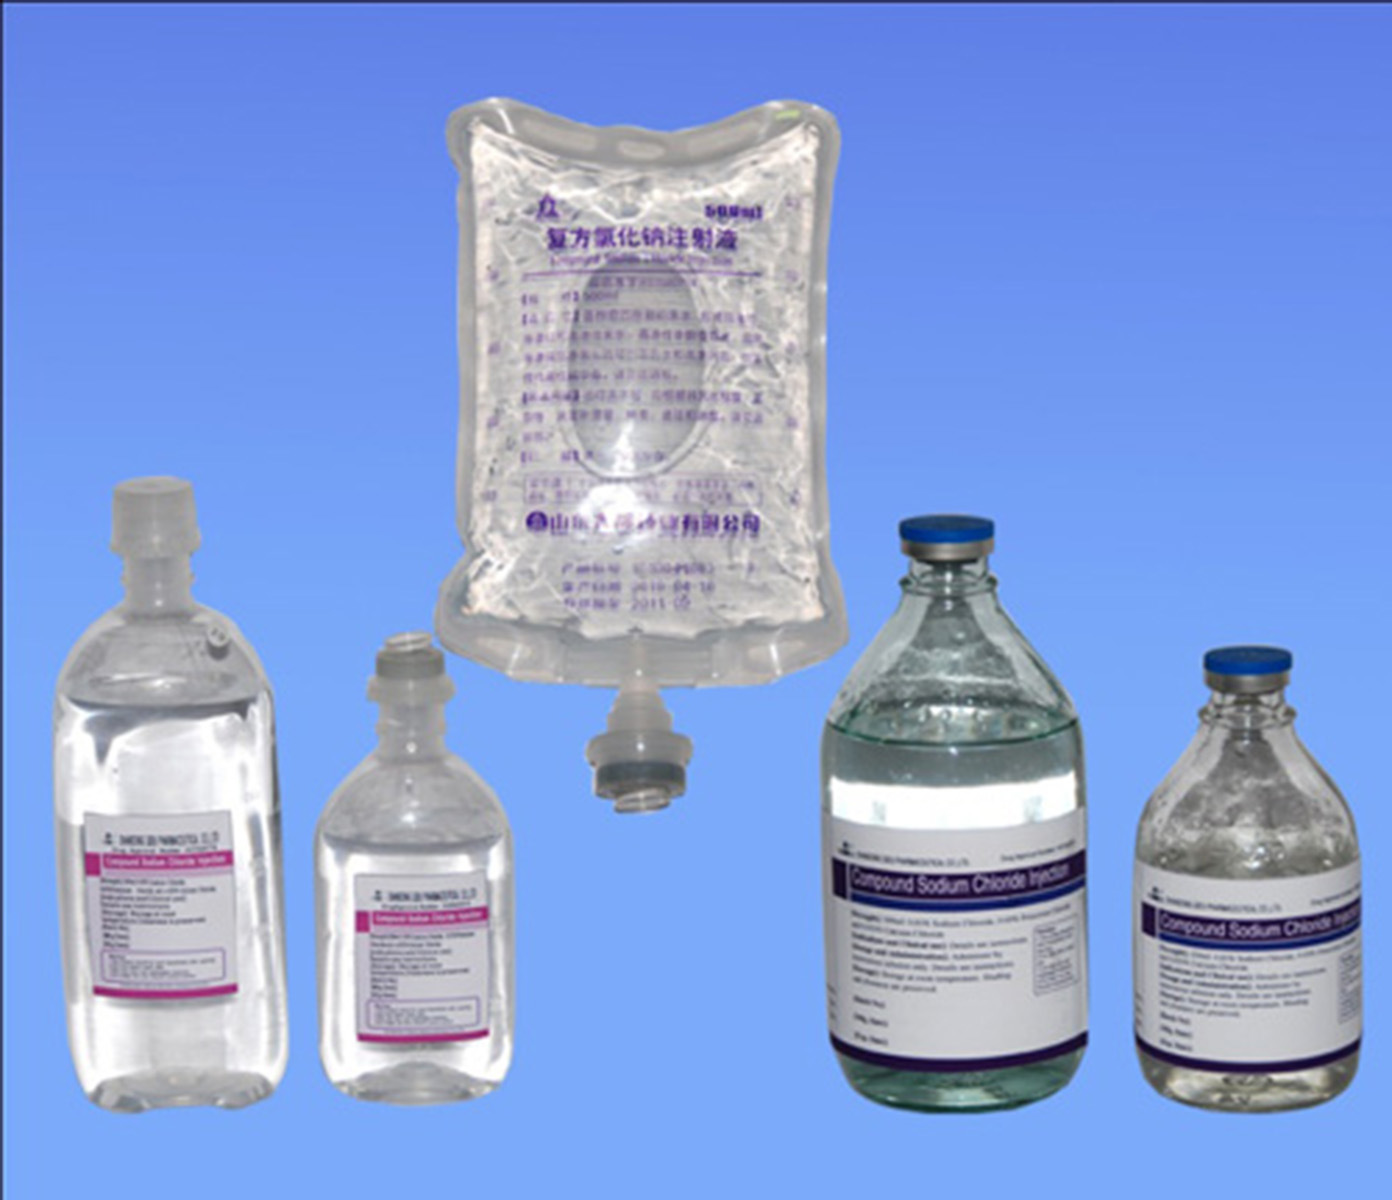 Common IV Solutions Compound Sodium Chloride Injection